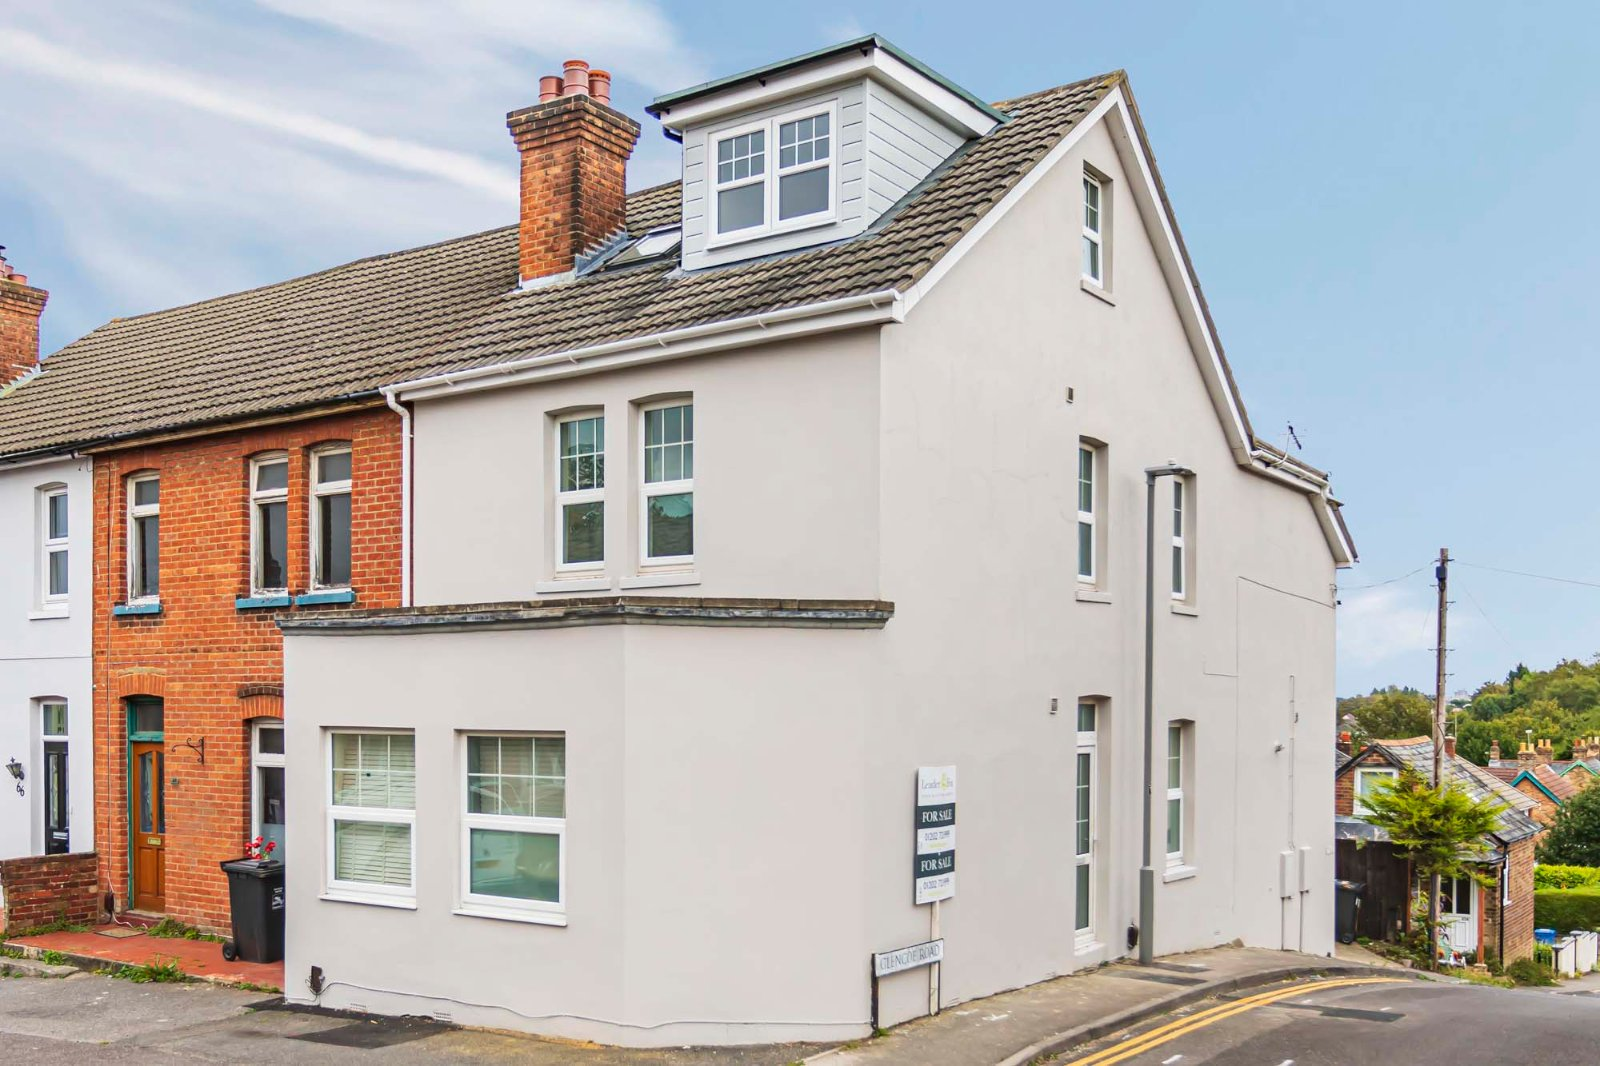 1 bed apartment to rent in Albert Road, Poole, BH12